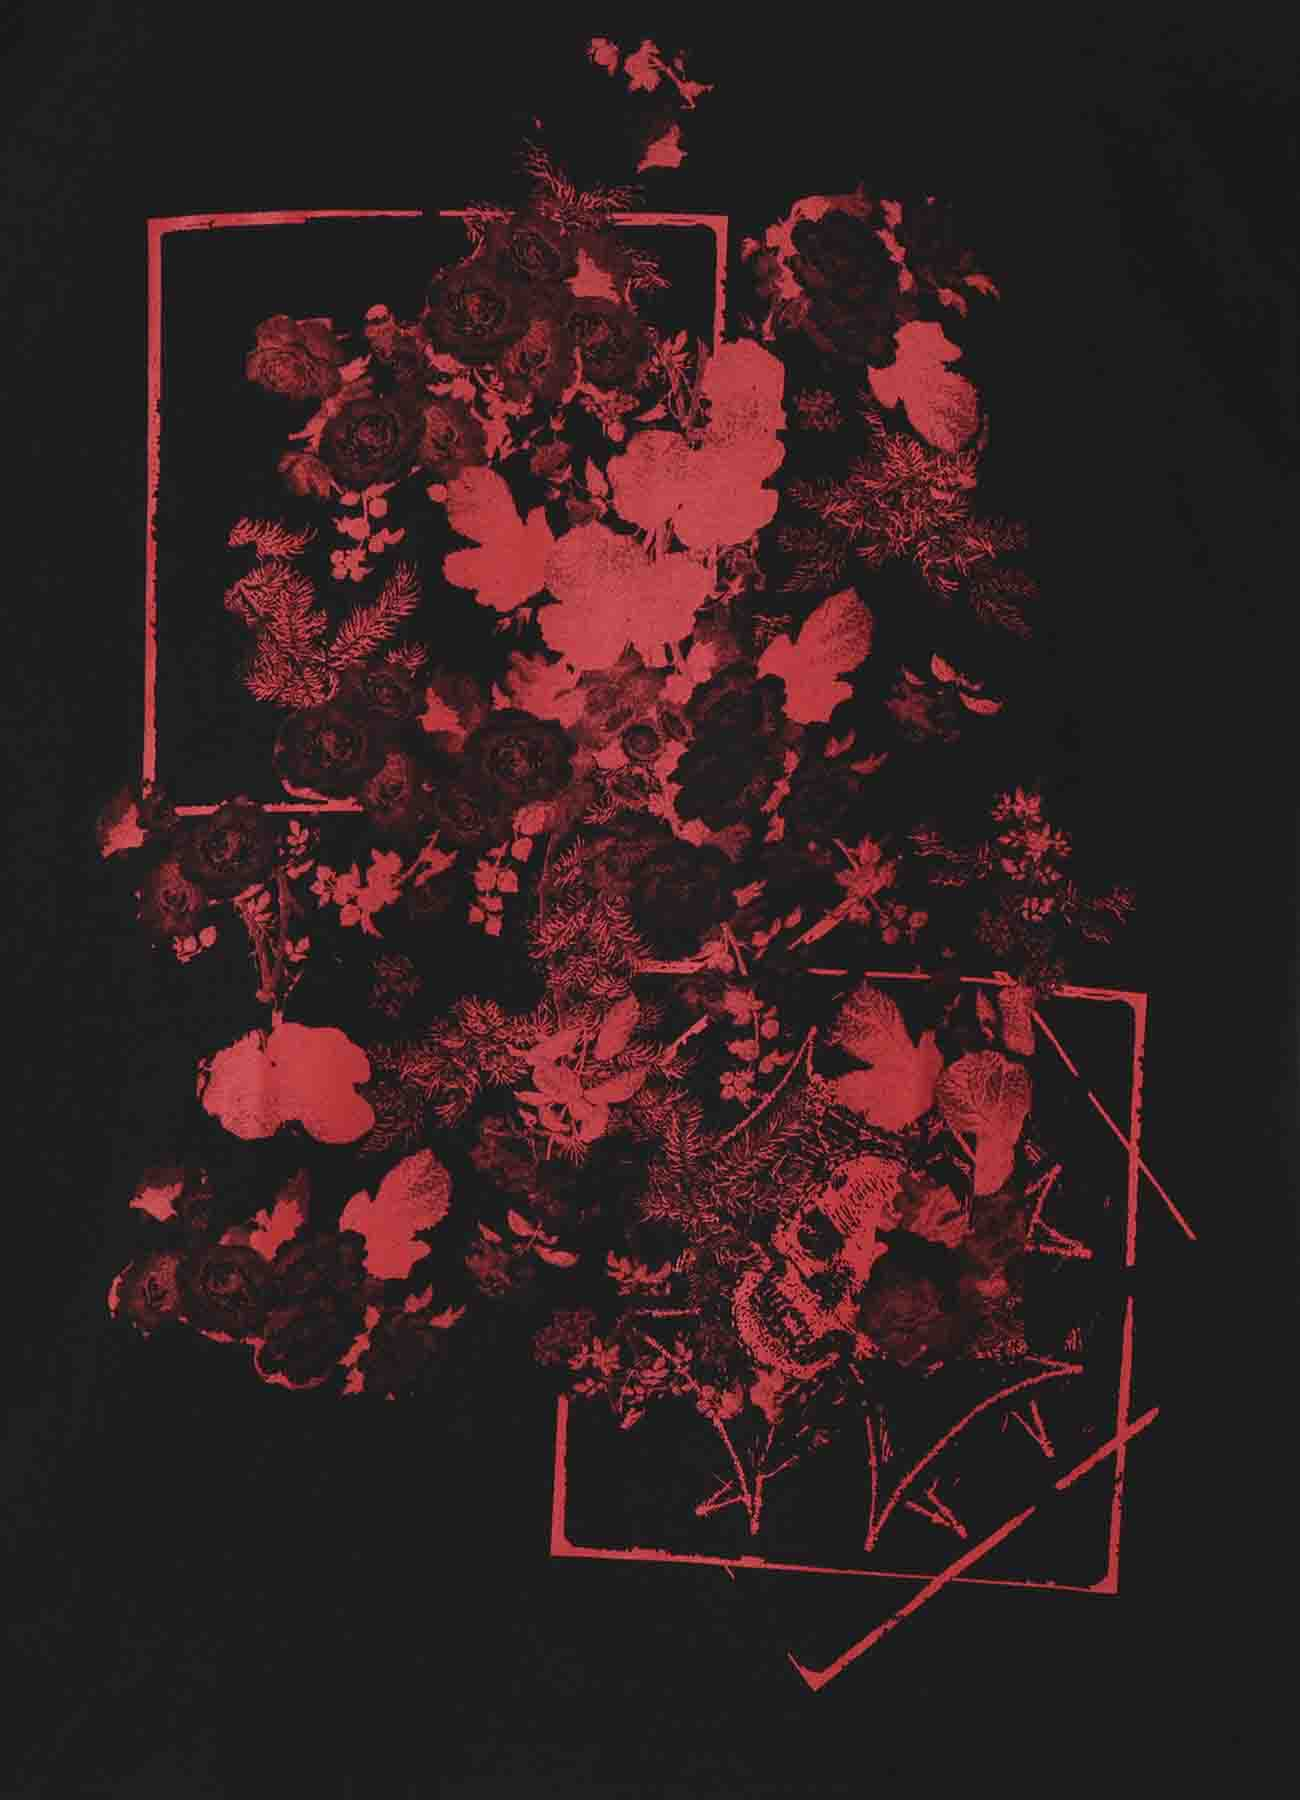 20/CottonJersey A lot of Red flowers and Skull